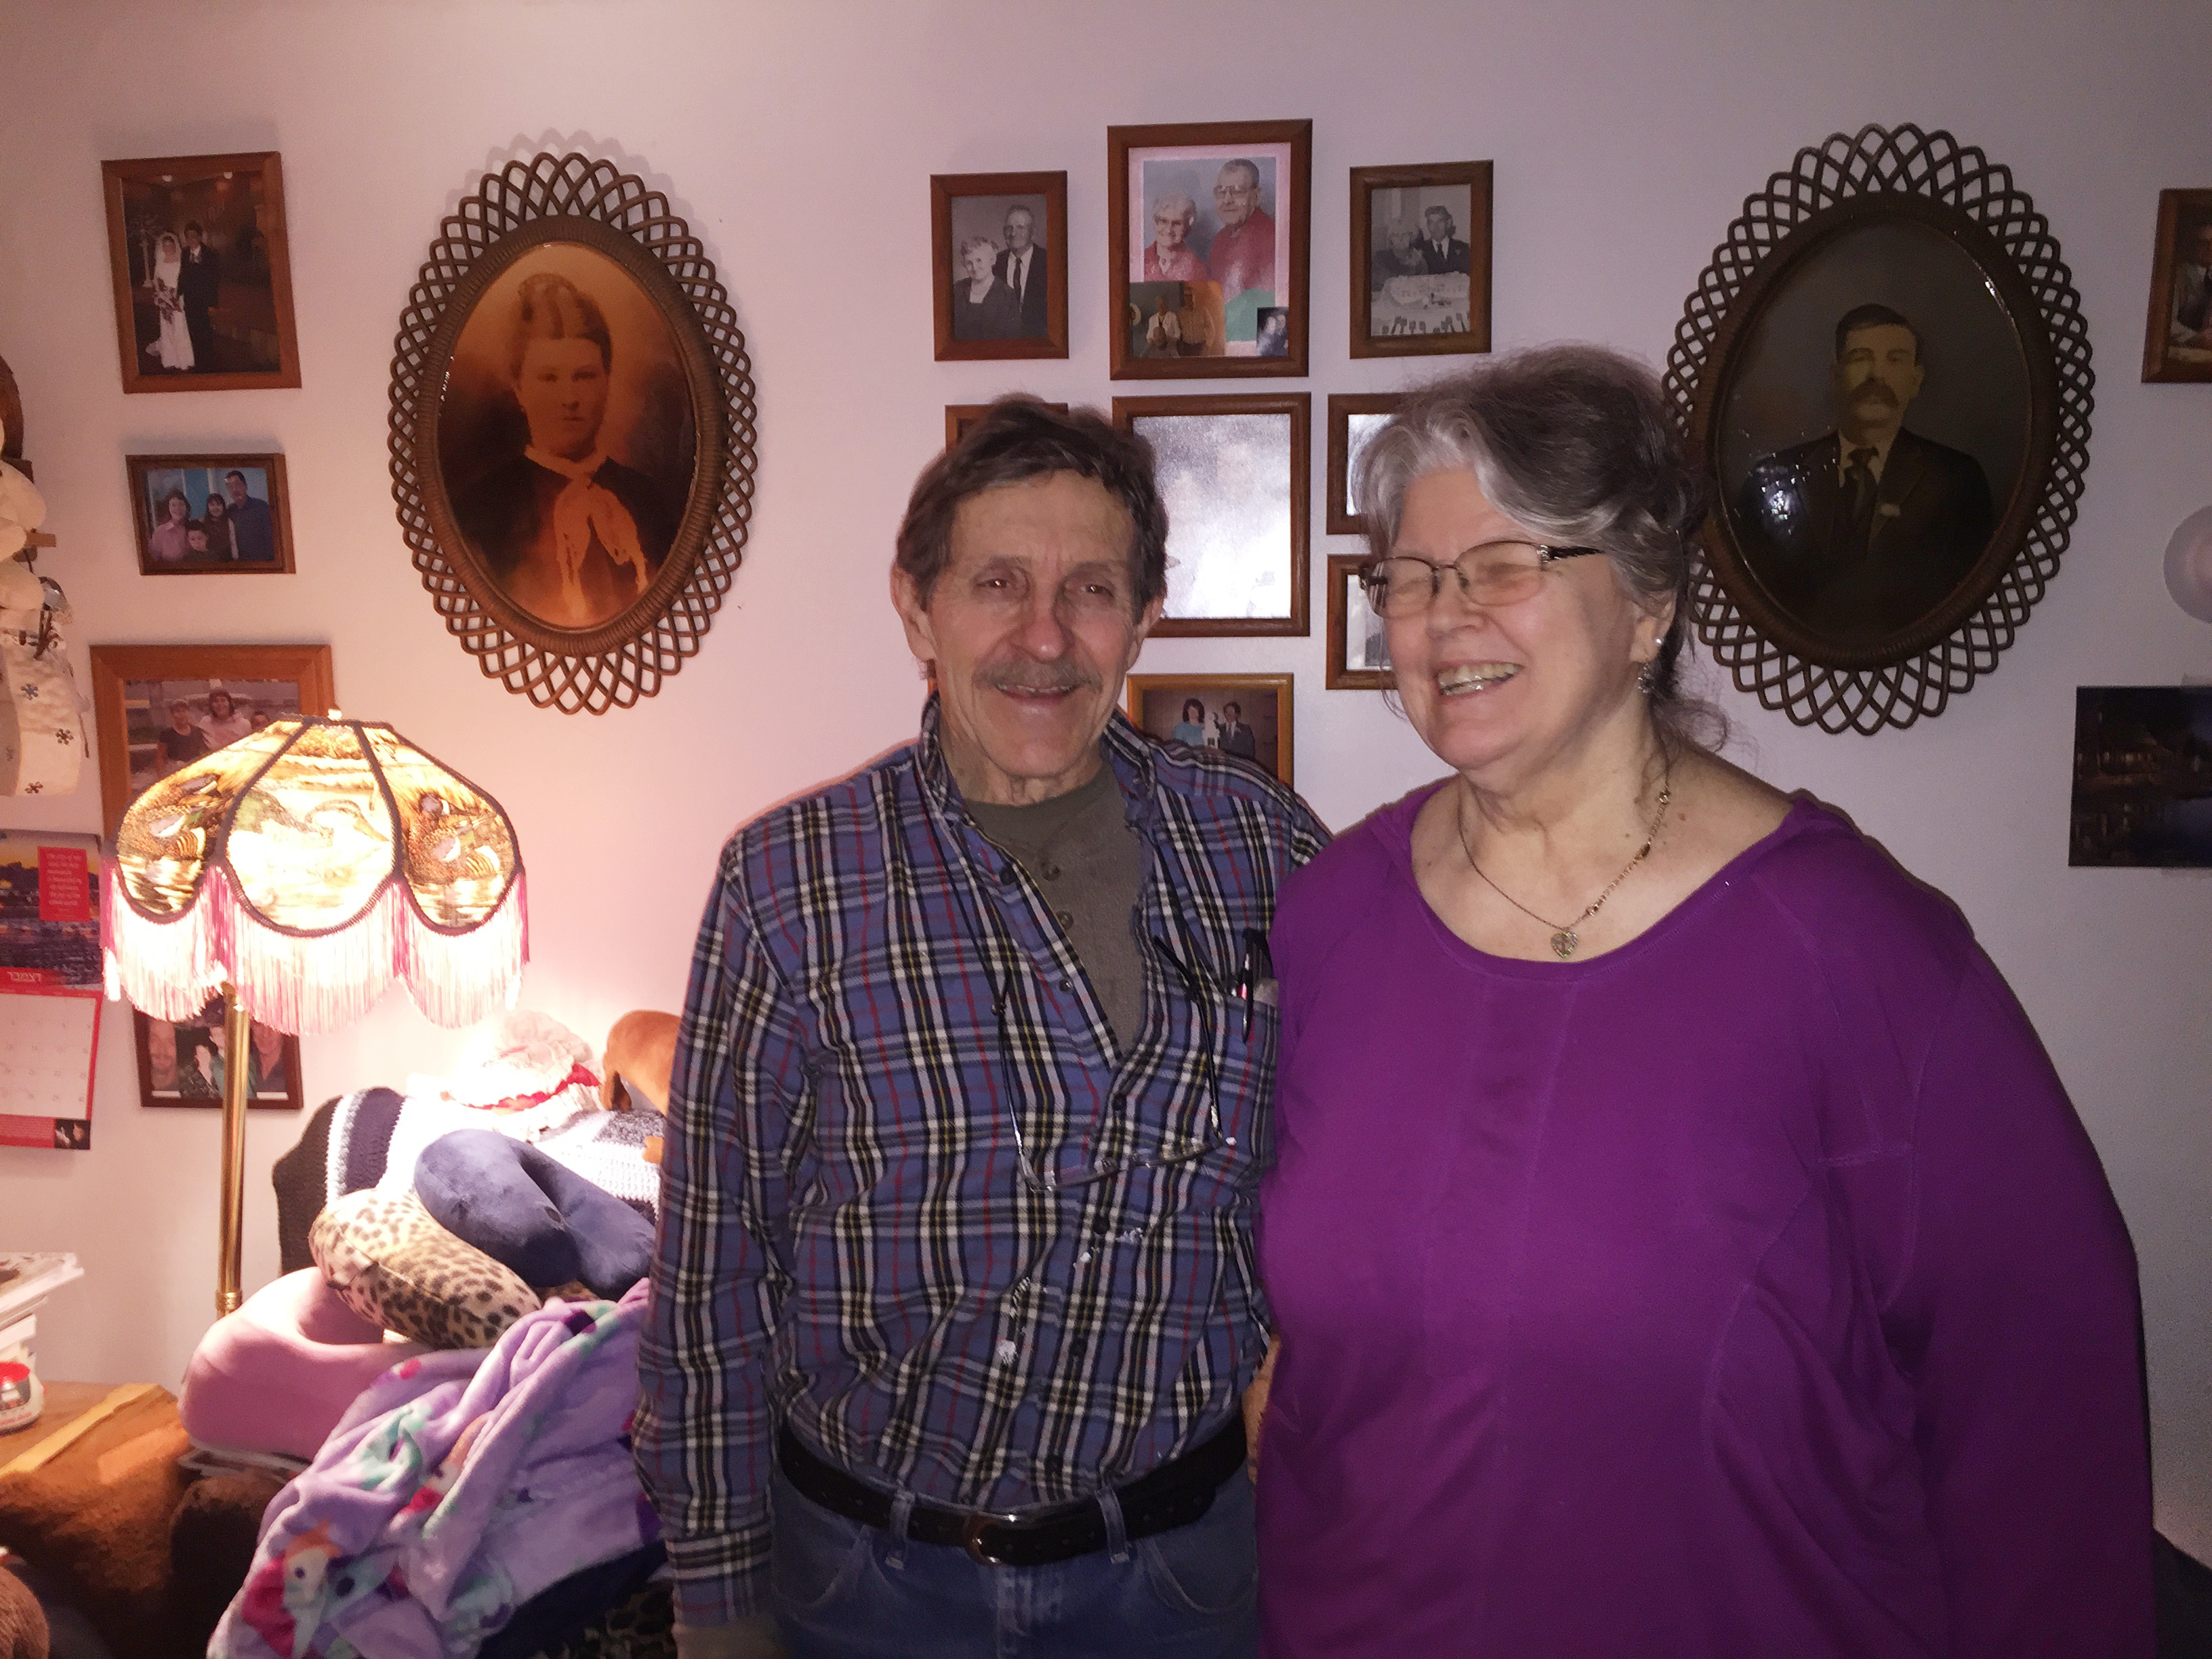 Shirley and Tom Clements tease each other as they pose in front of their wall of memories. (Photo by Anne Hillman/Alaska Public Media)